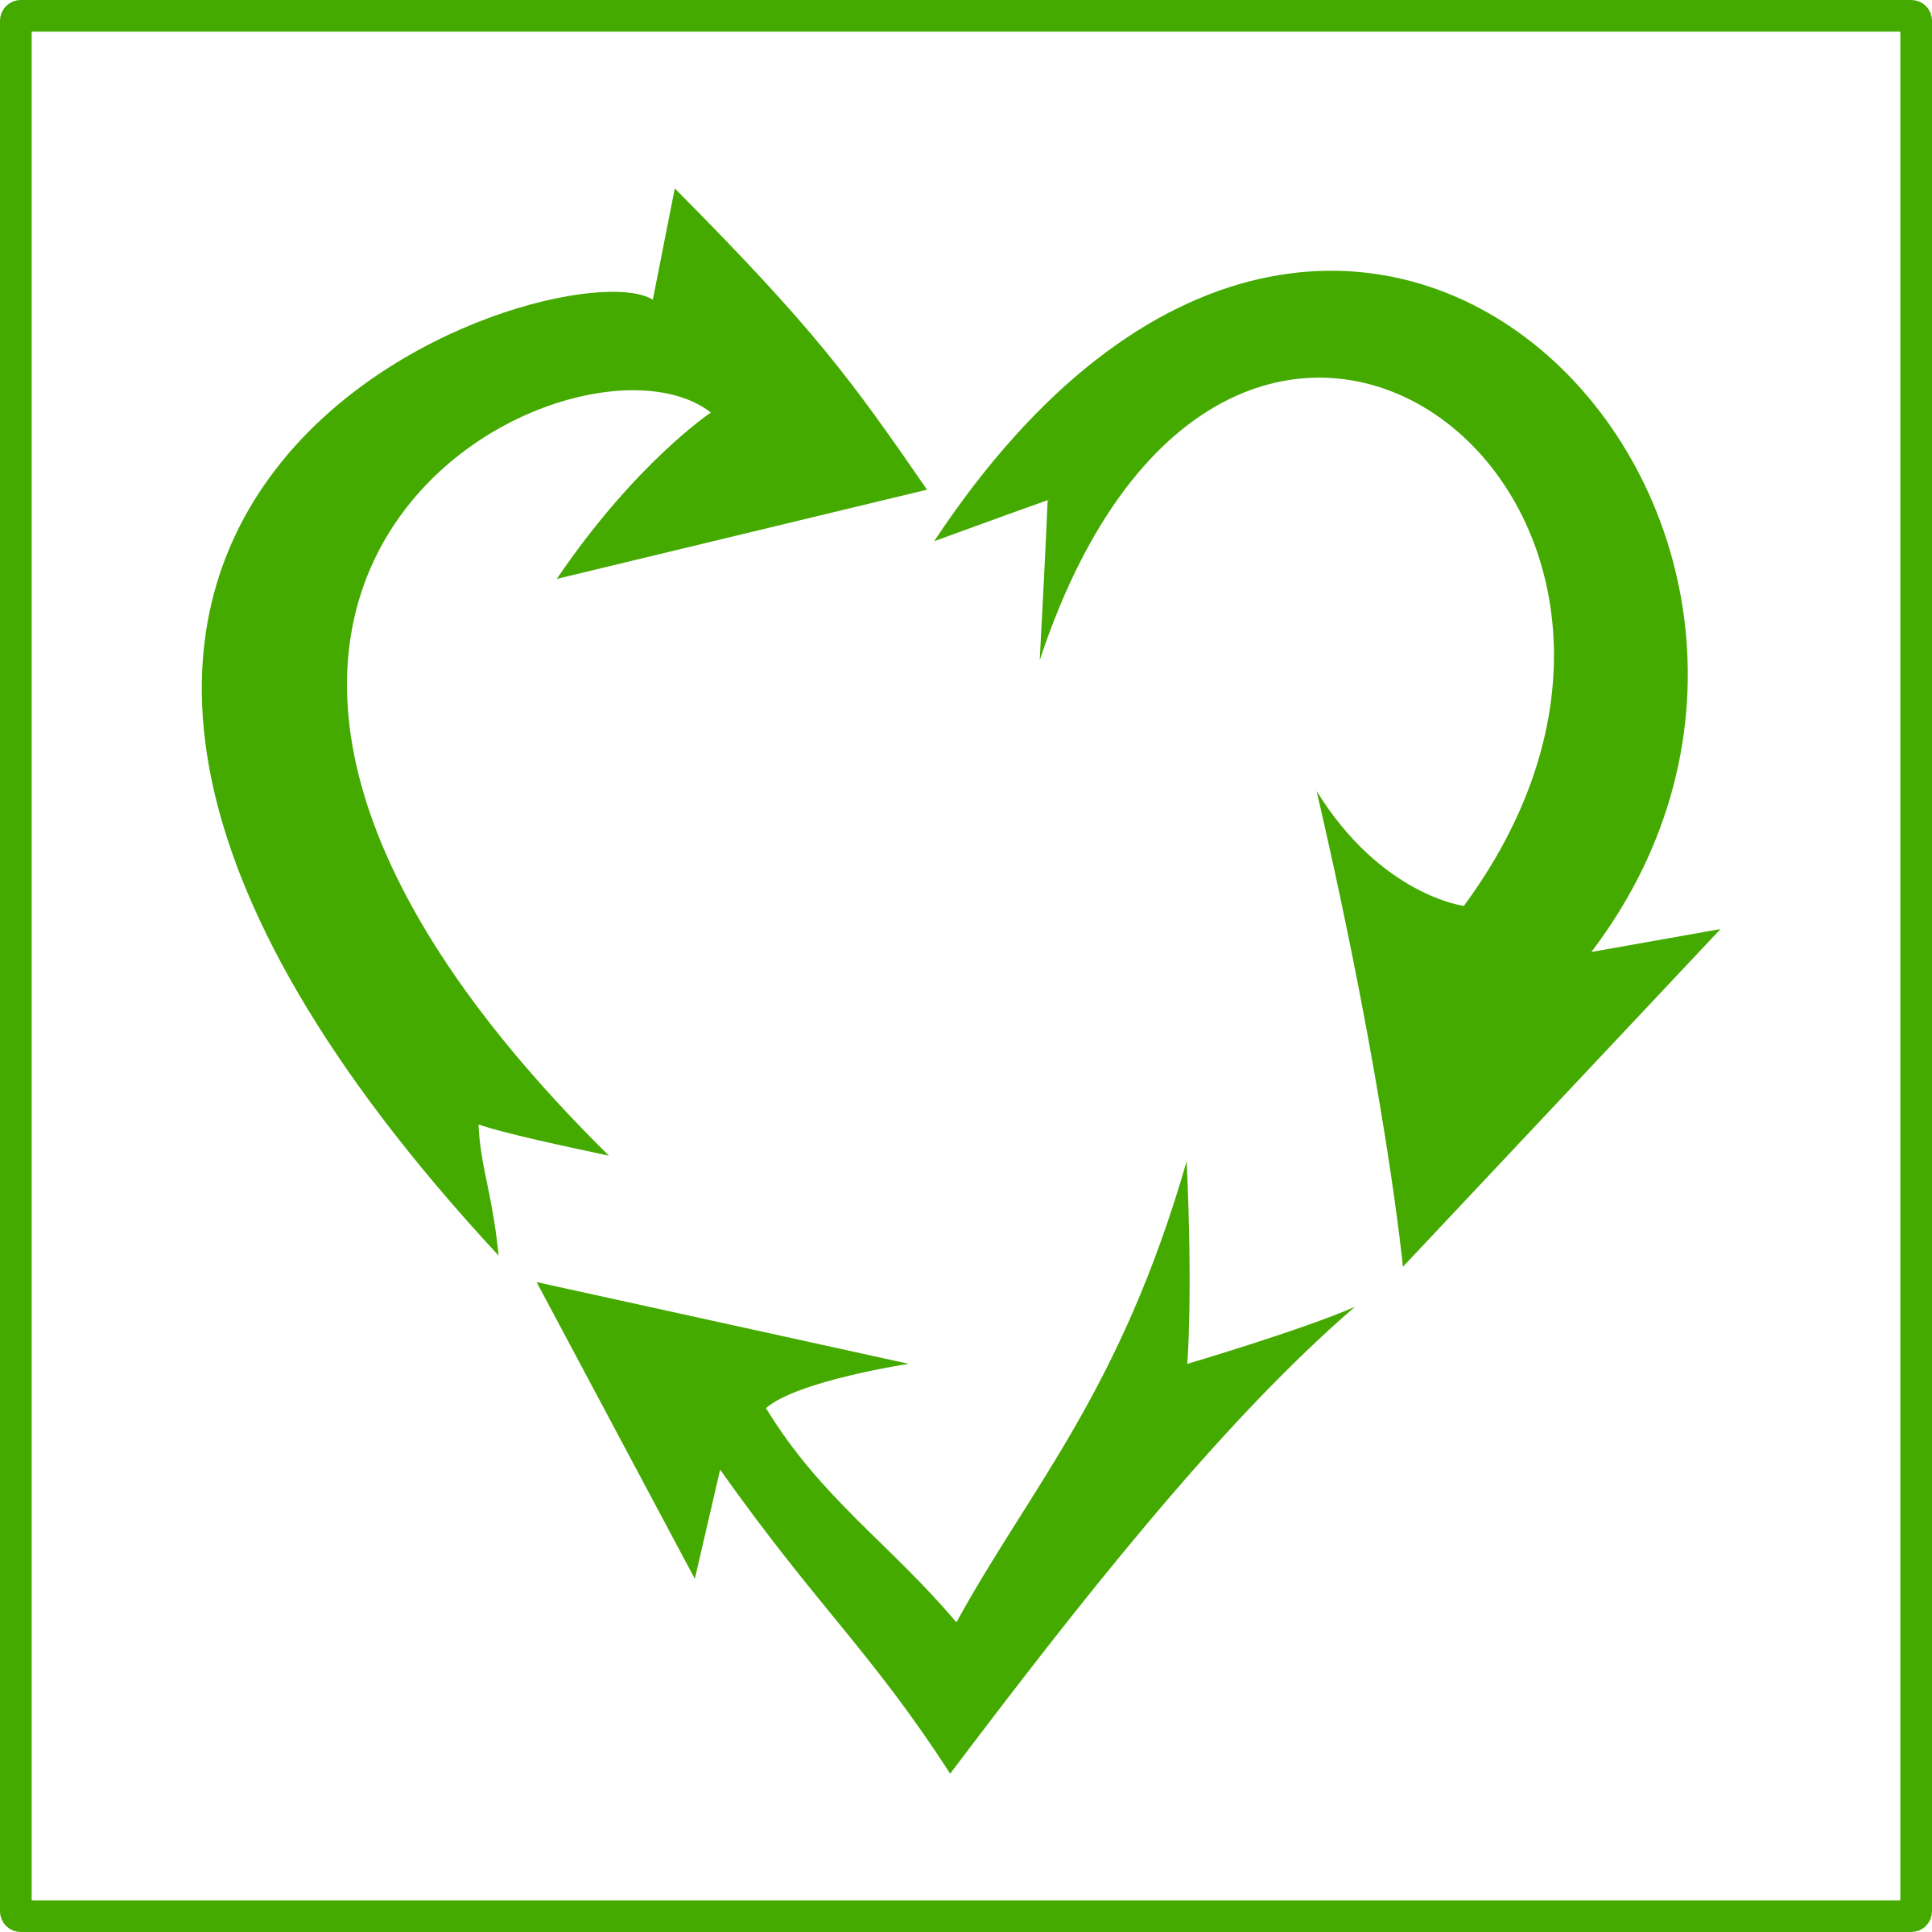 recycle heart by amites